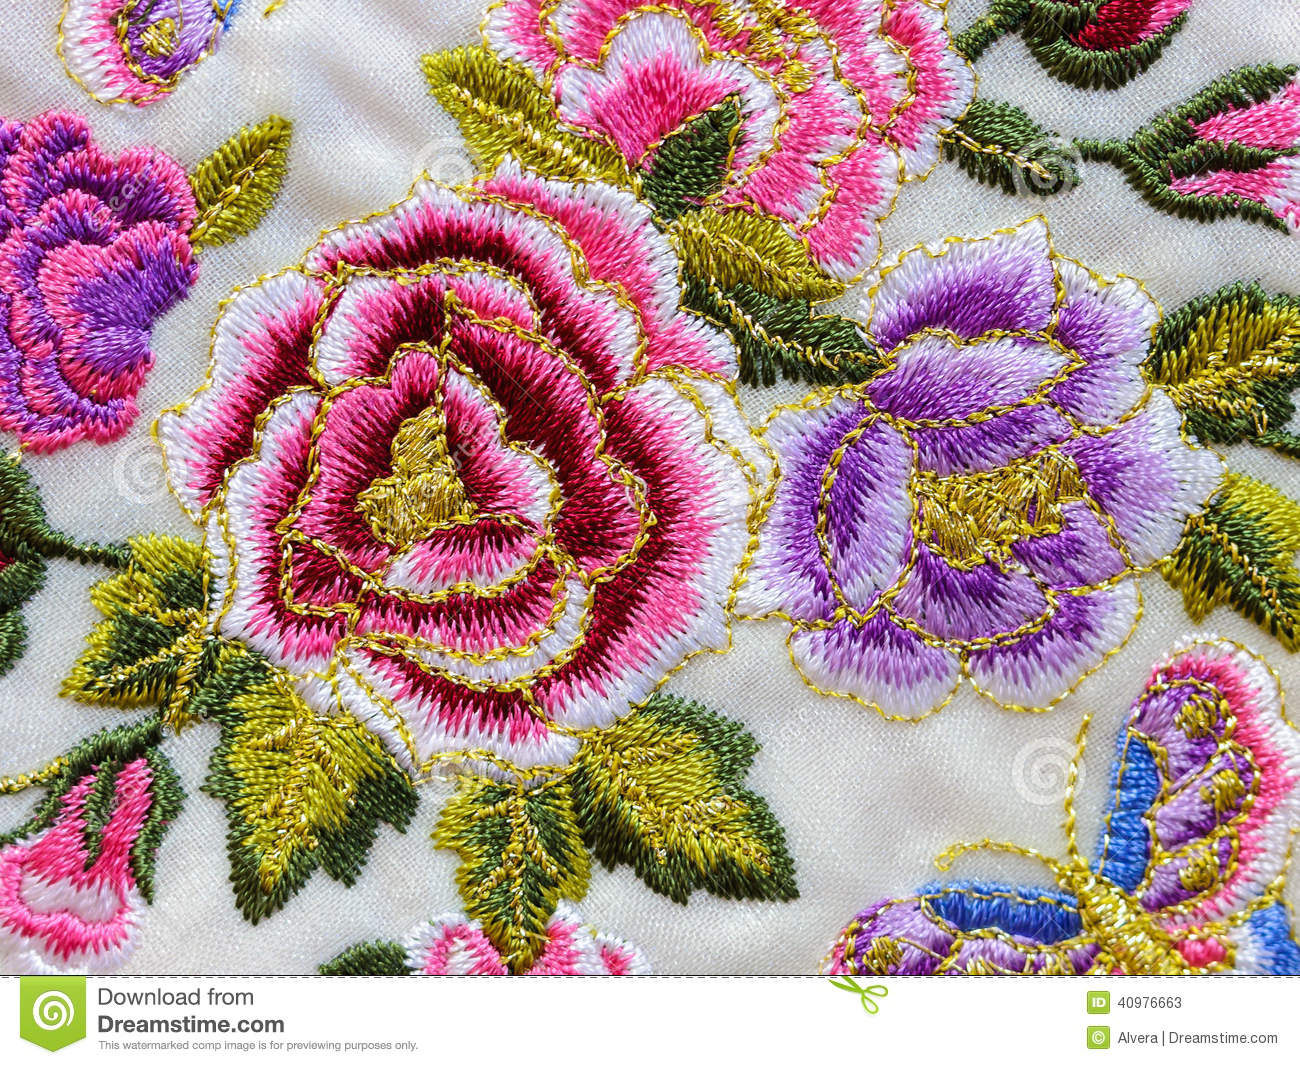 Beautiful embroidery with vivid flowers on white textile background